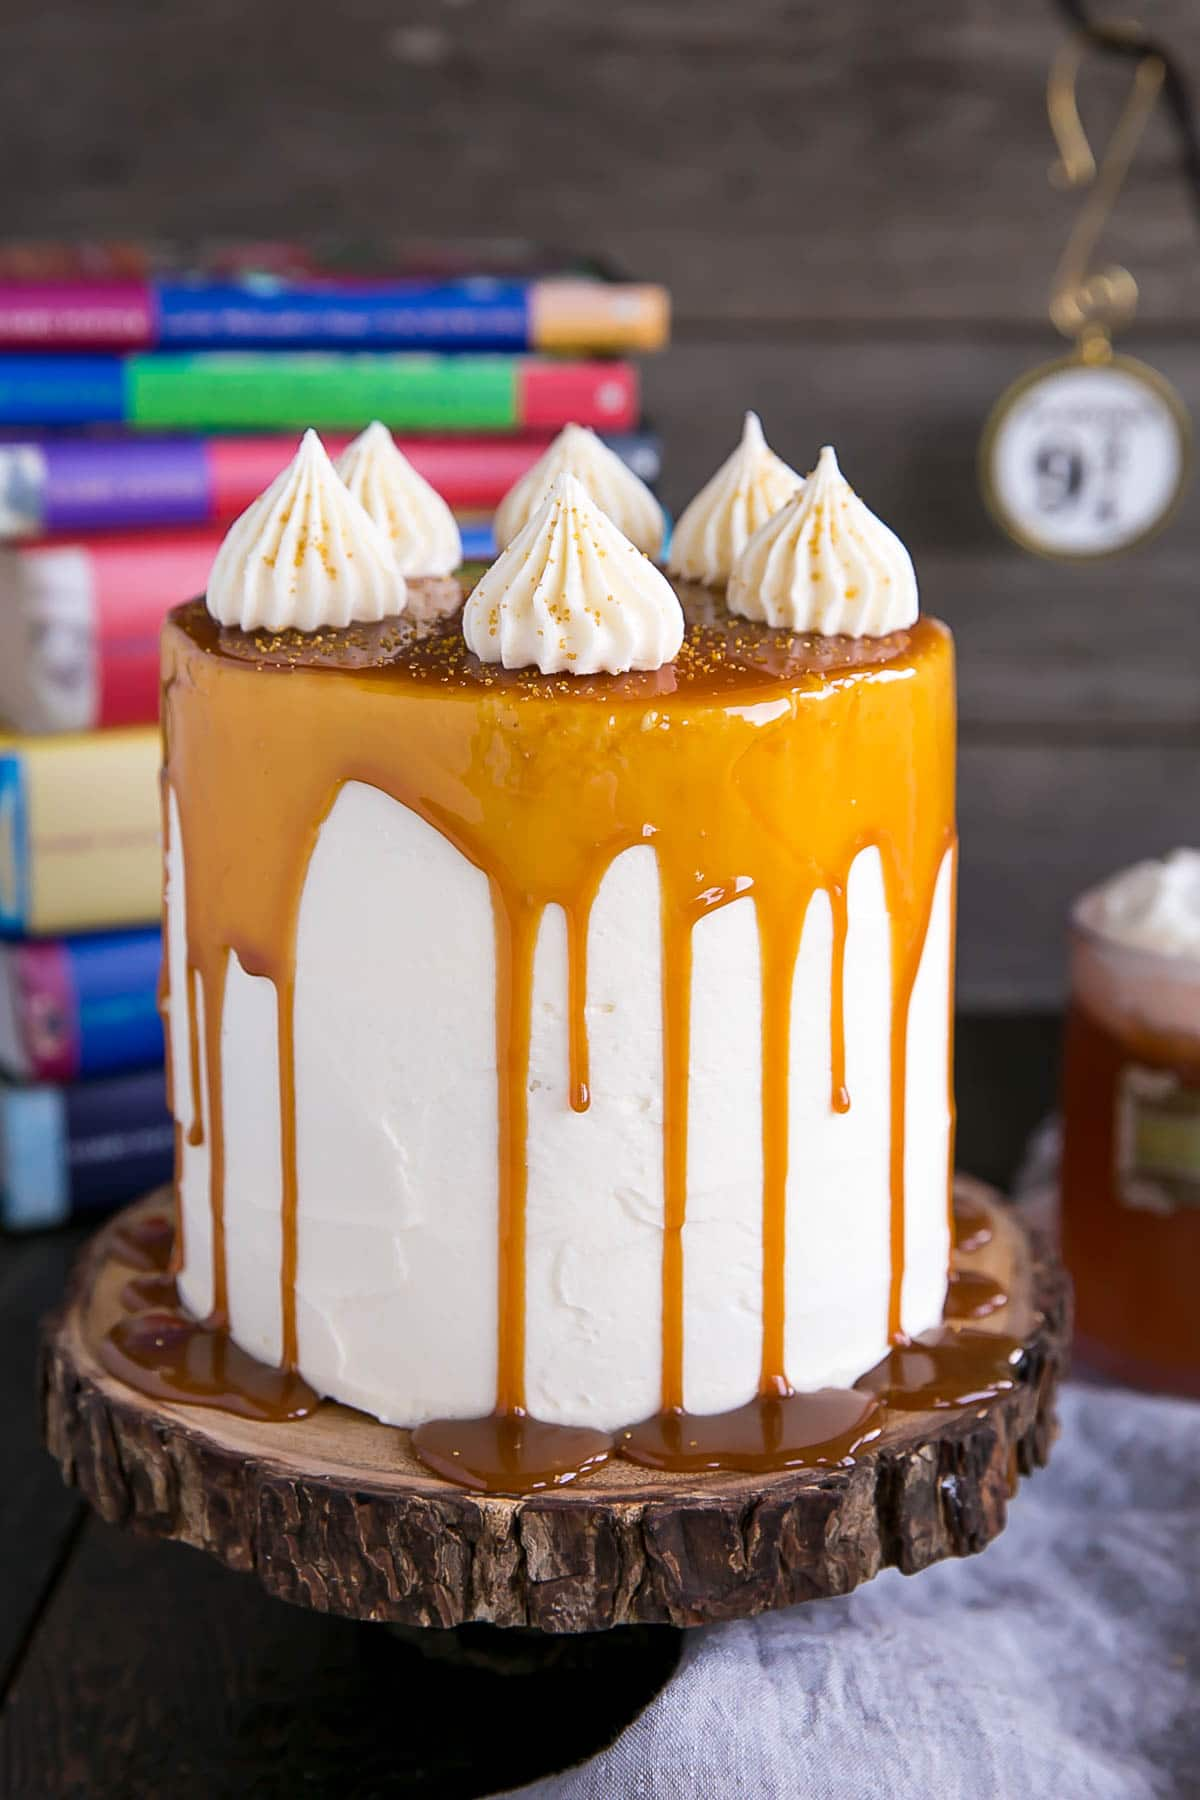 Butterbeer Cake made with butterscotch, cream soda, and marshmallow.